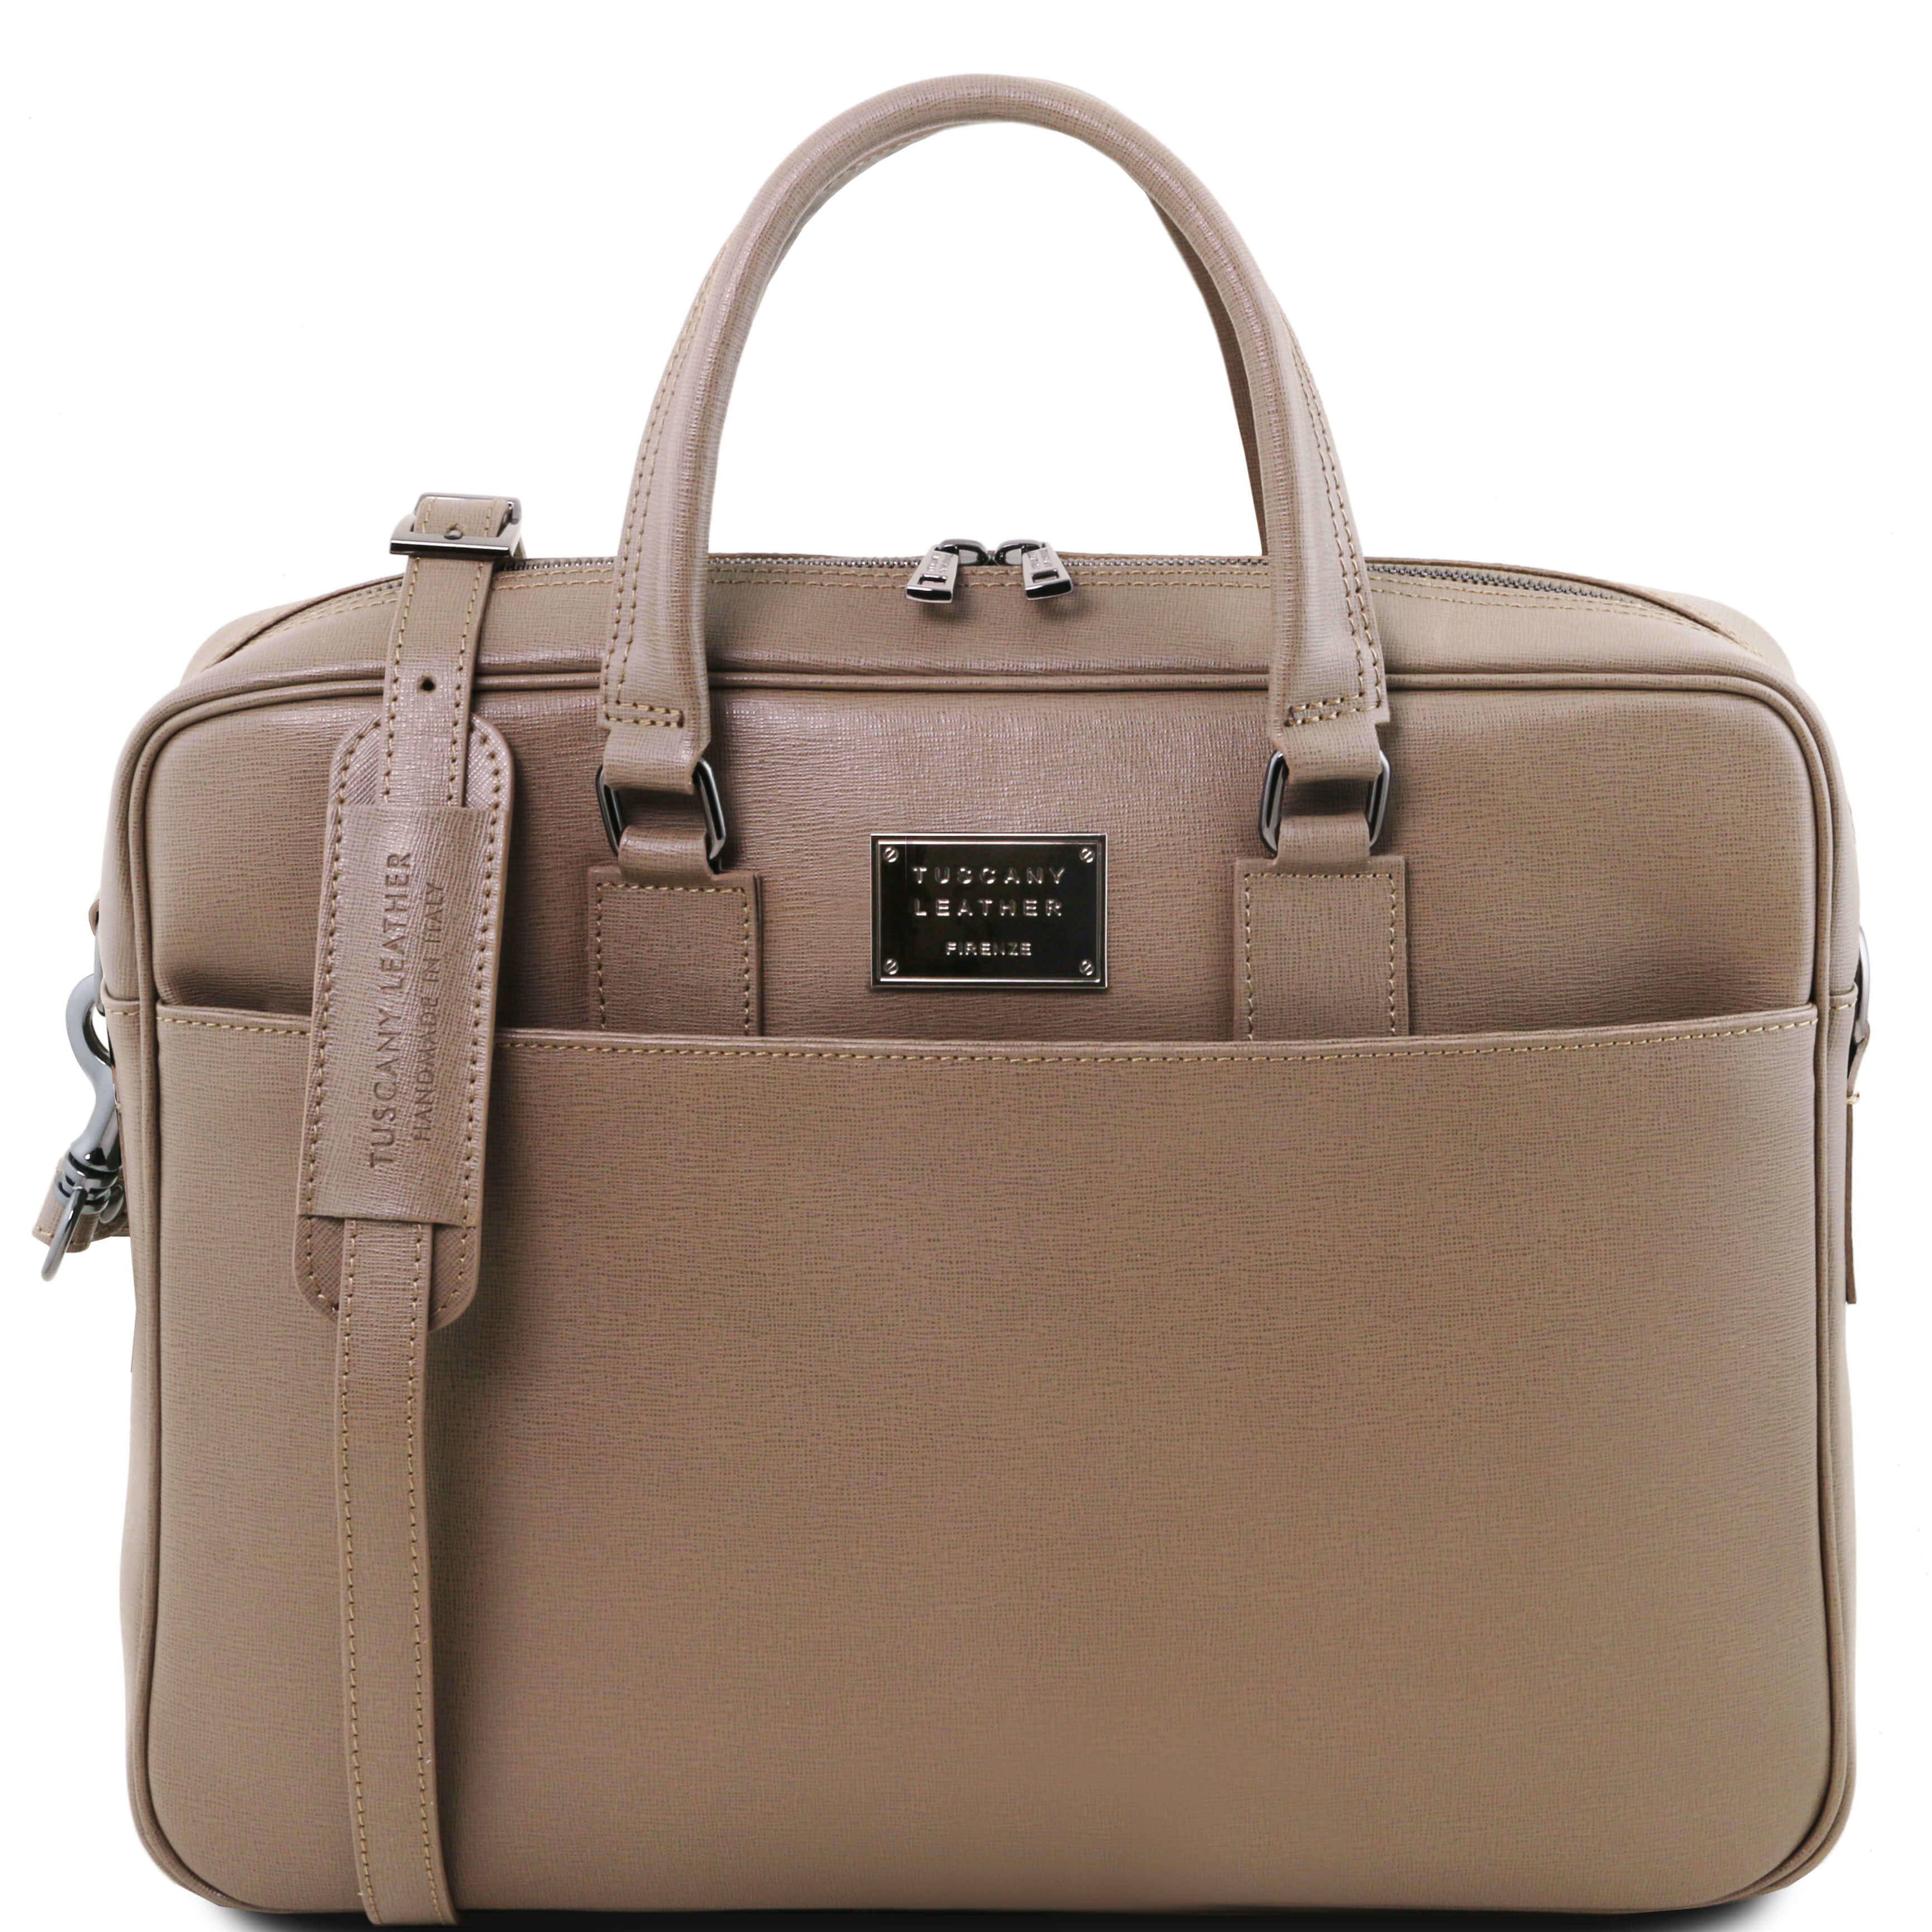 TL141627 Urbino Saffiano leather laptop briefcase with front pocket & Shoulder Strap